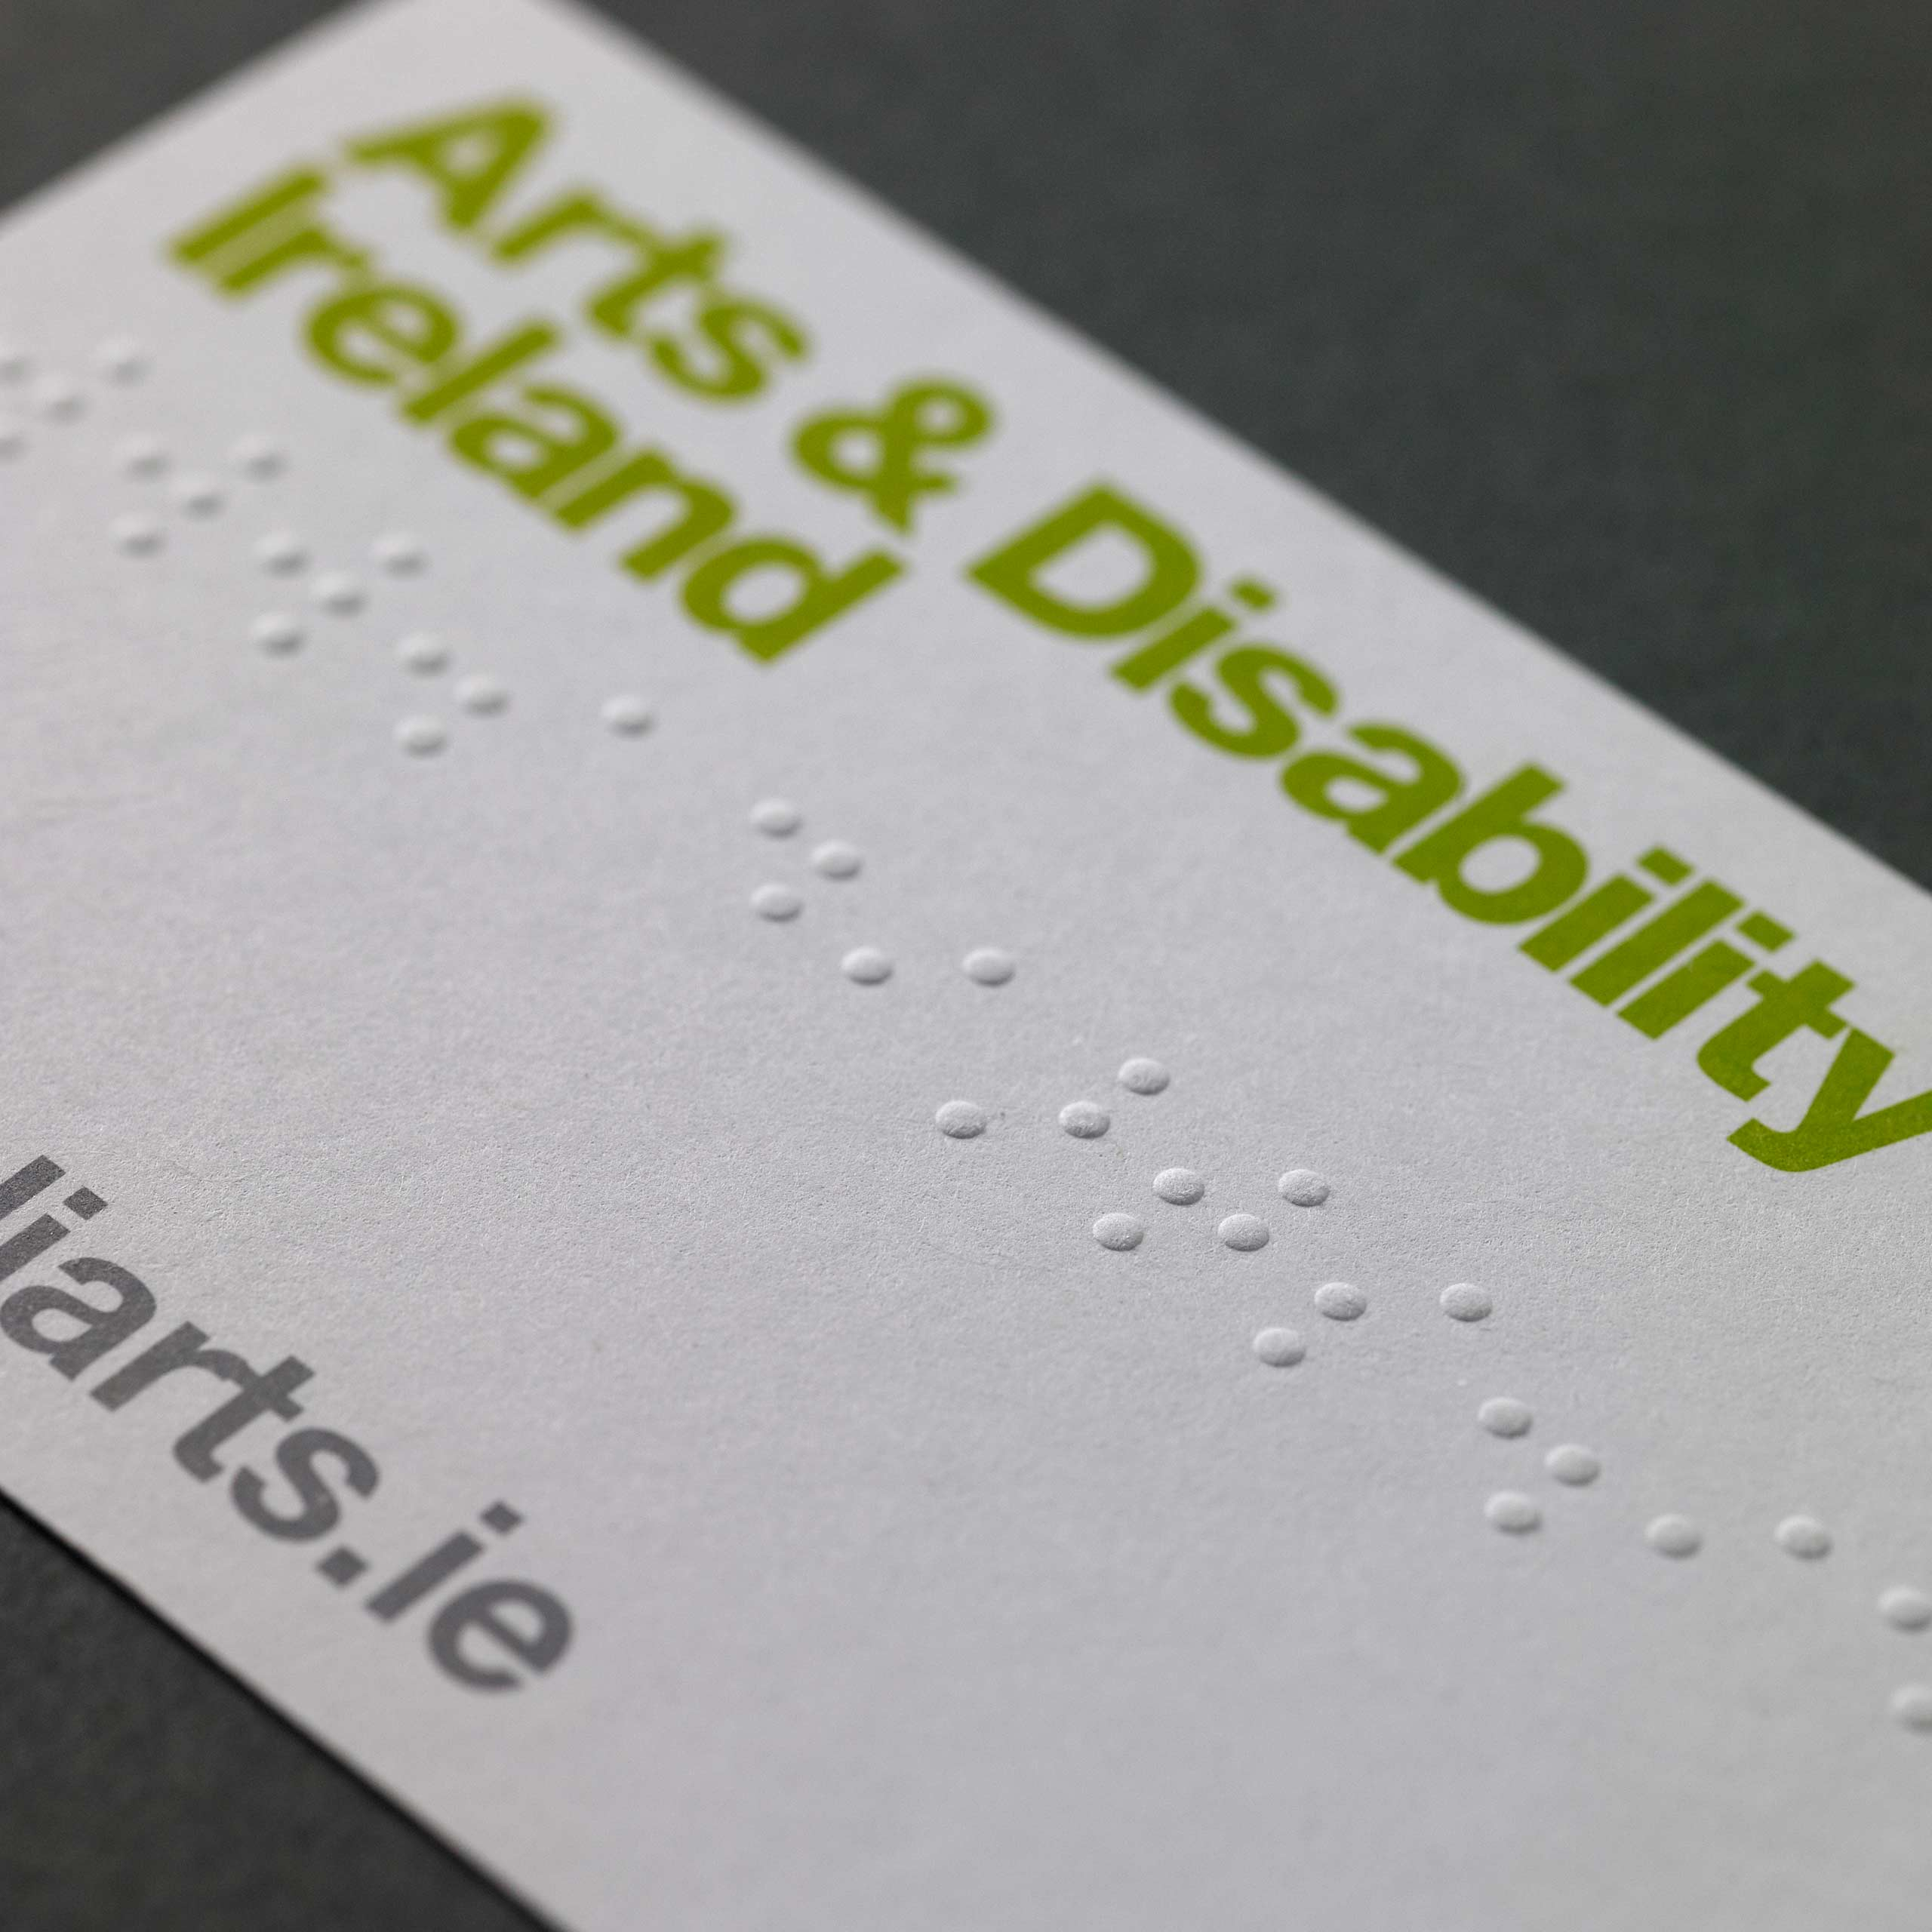 Image of the ADI Business Card